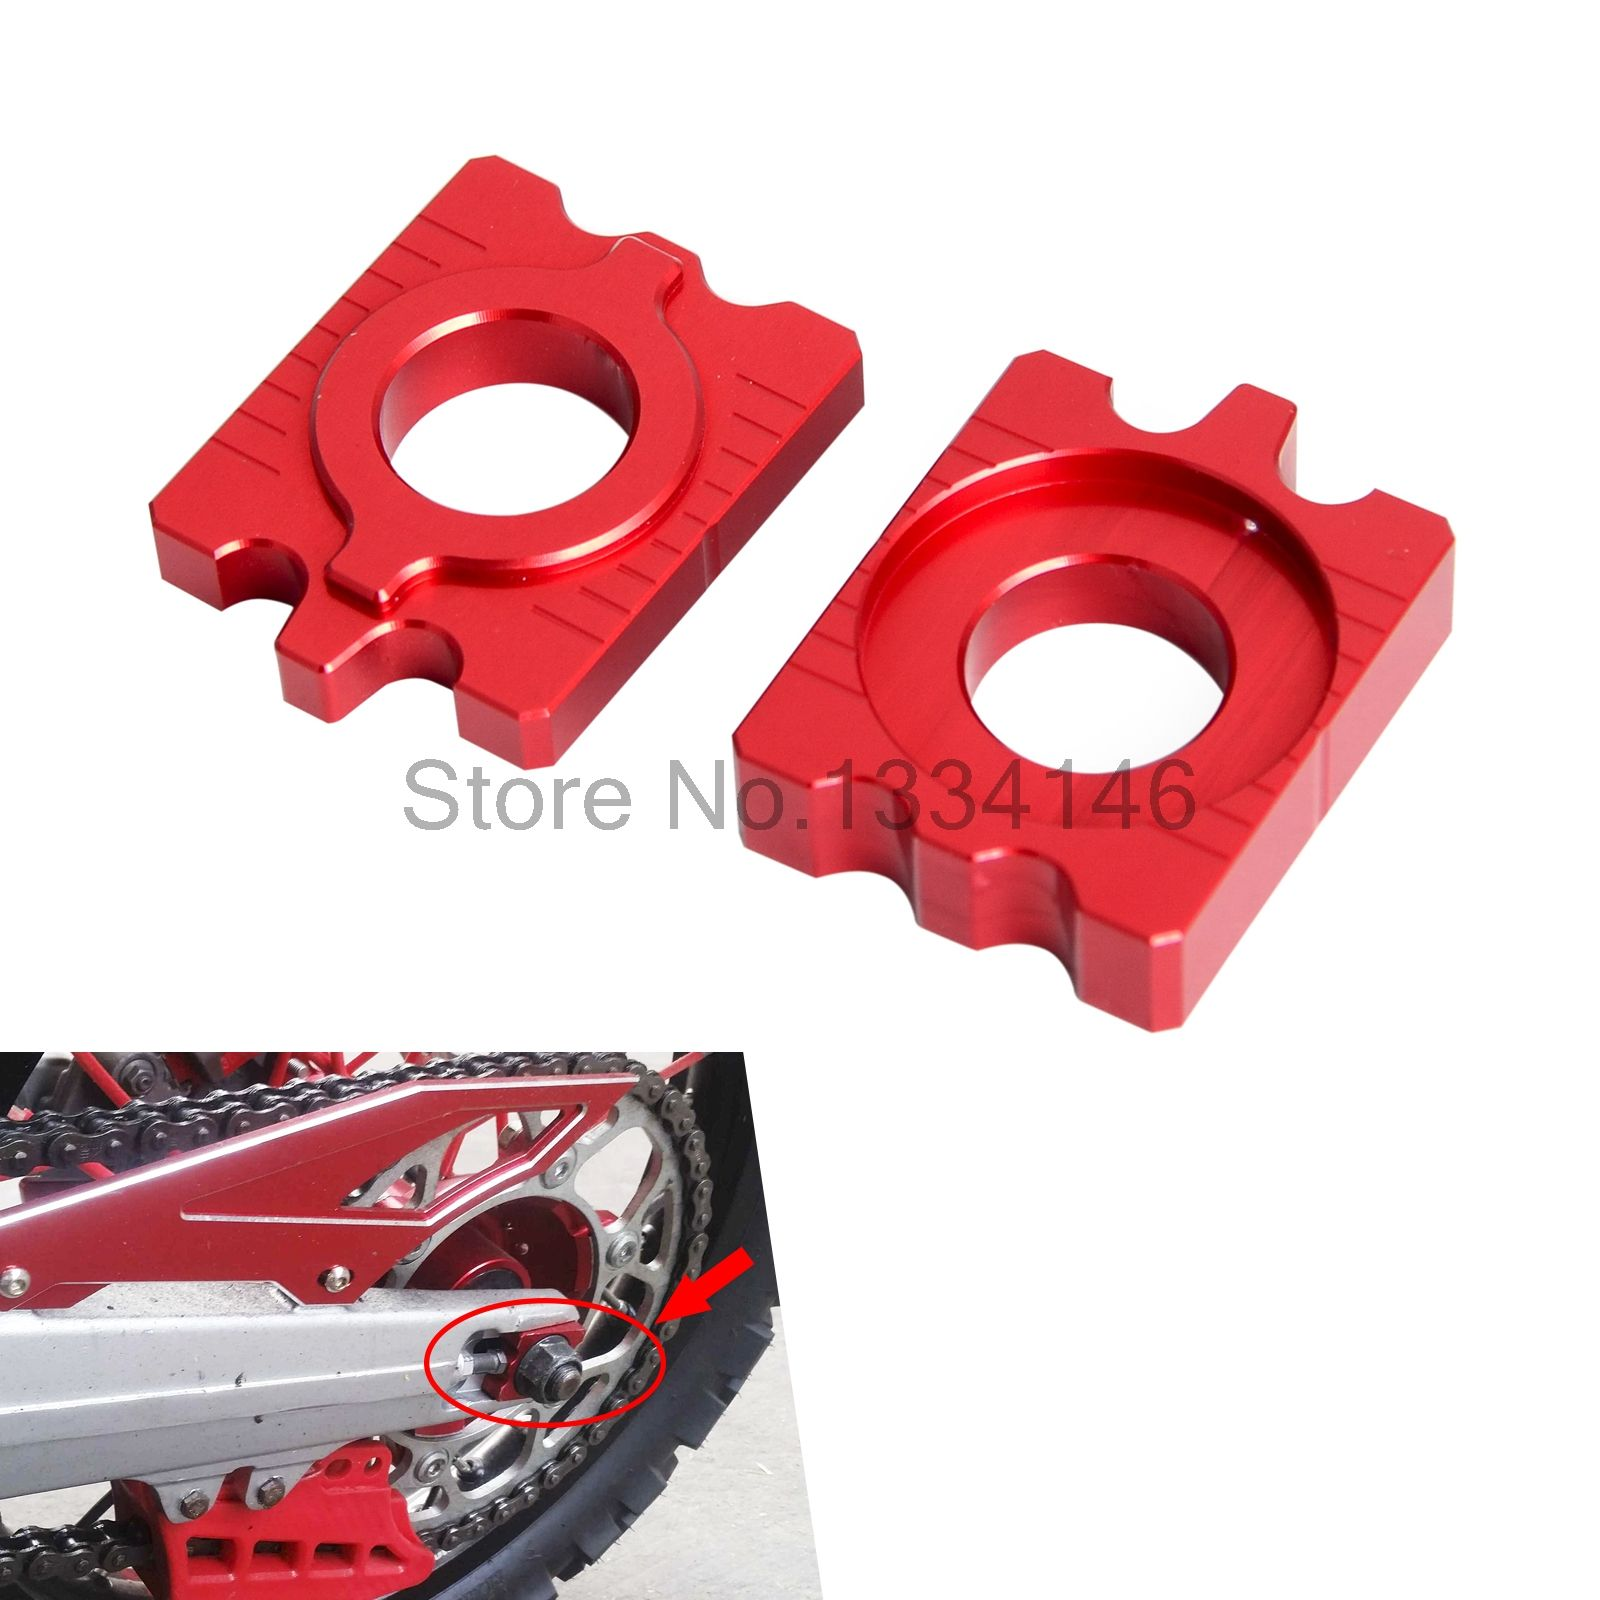 Rear Axle Block Chain Adjuster For Honda Crf250l Crf250m 2012 2015